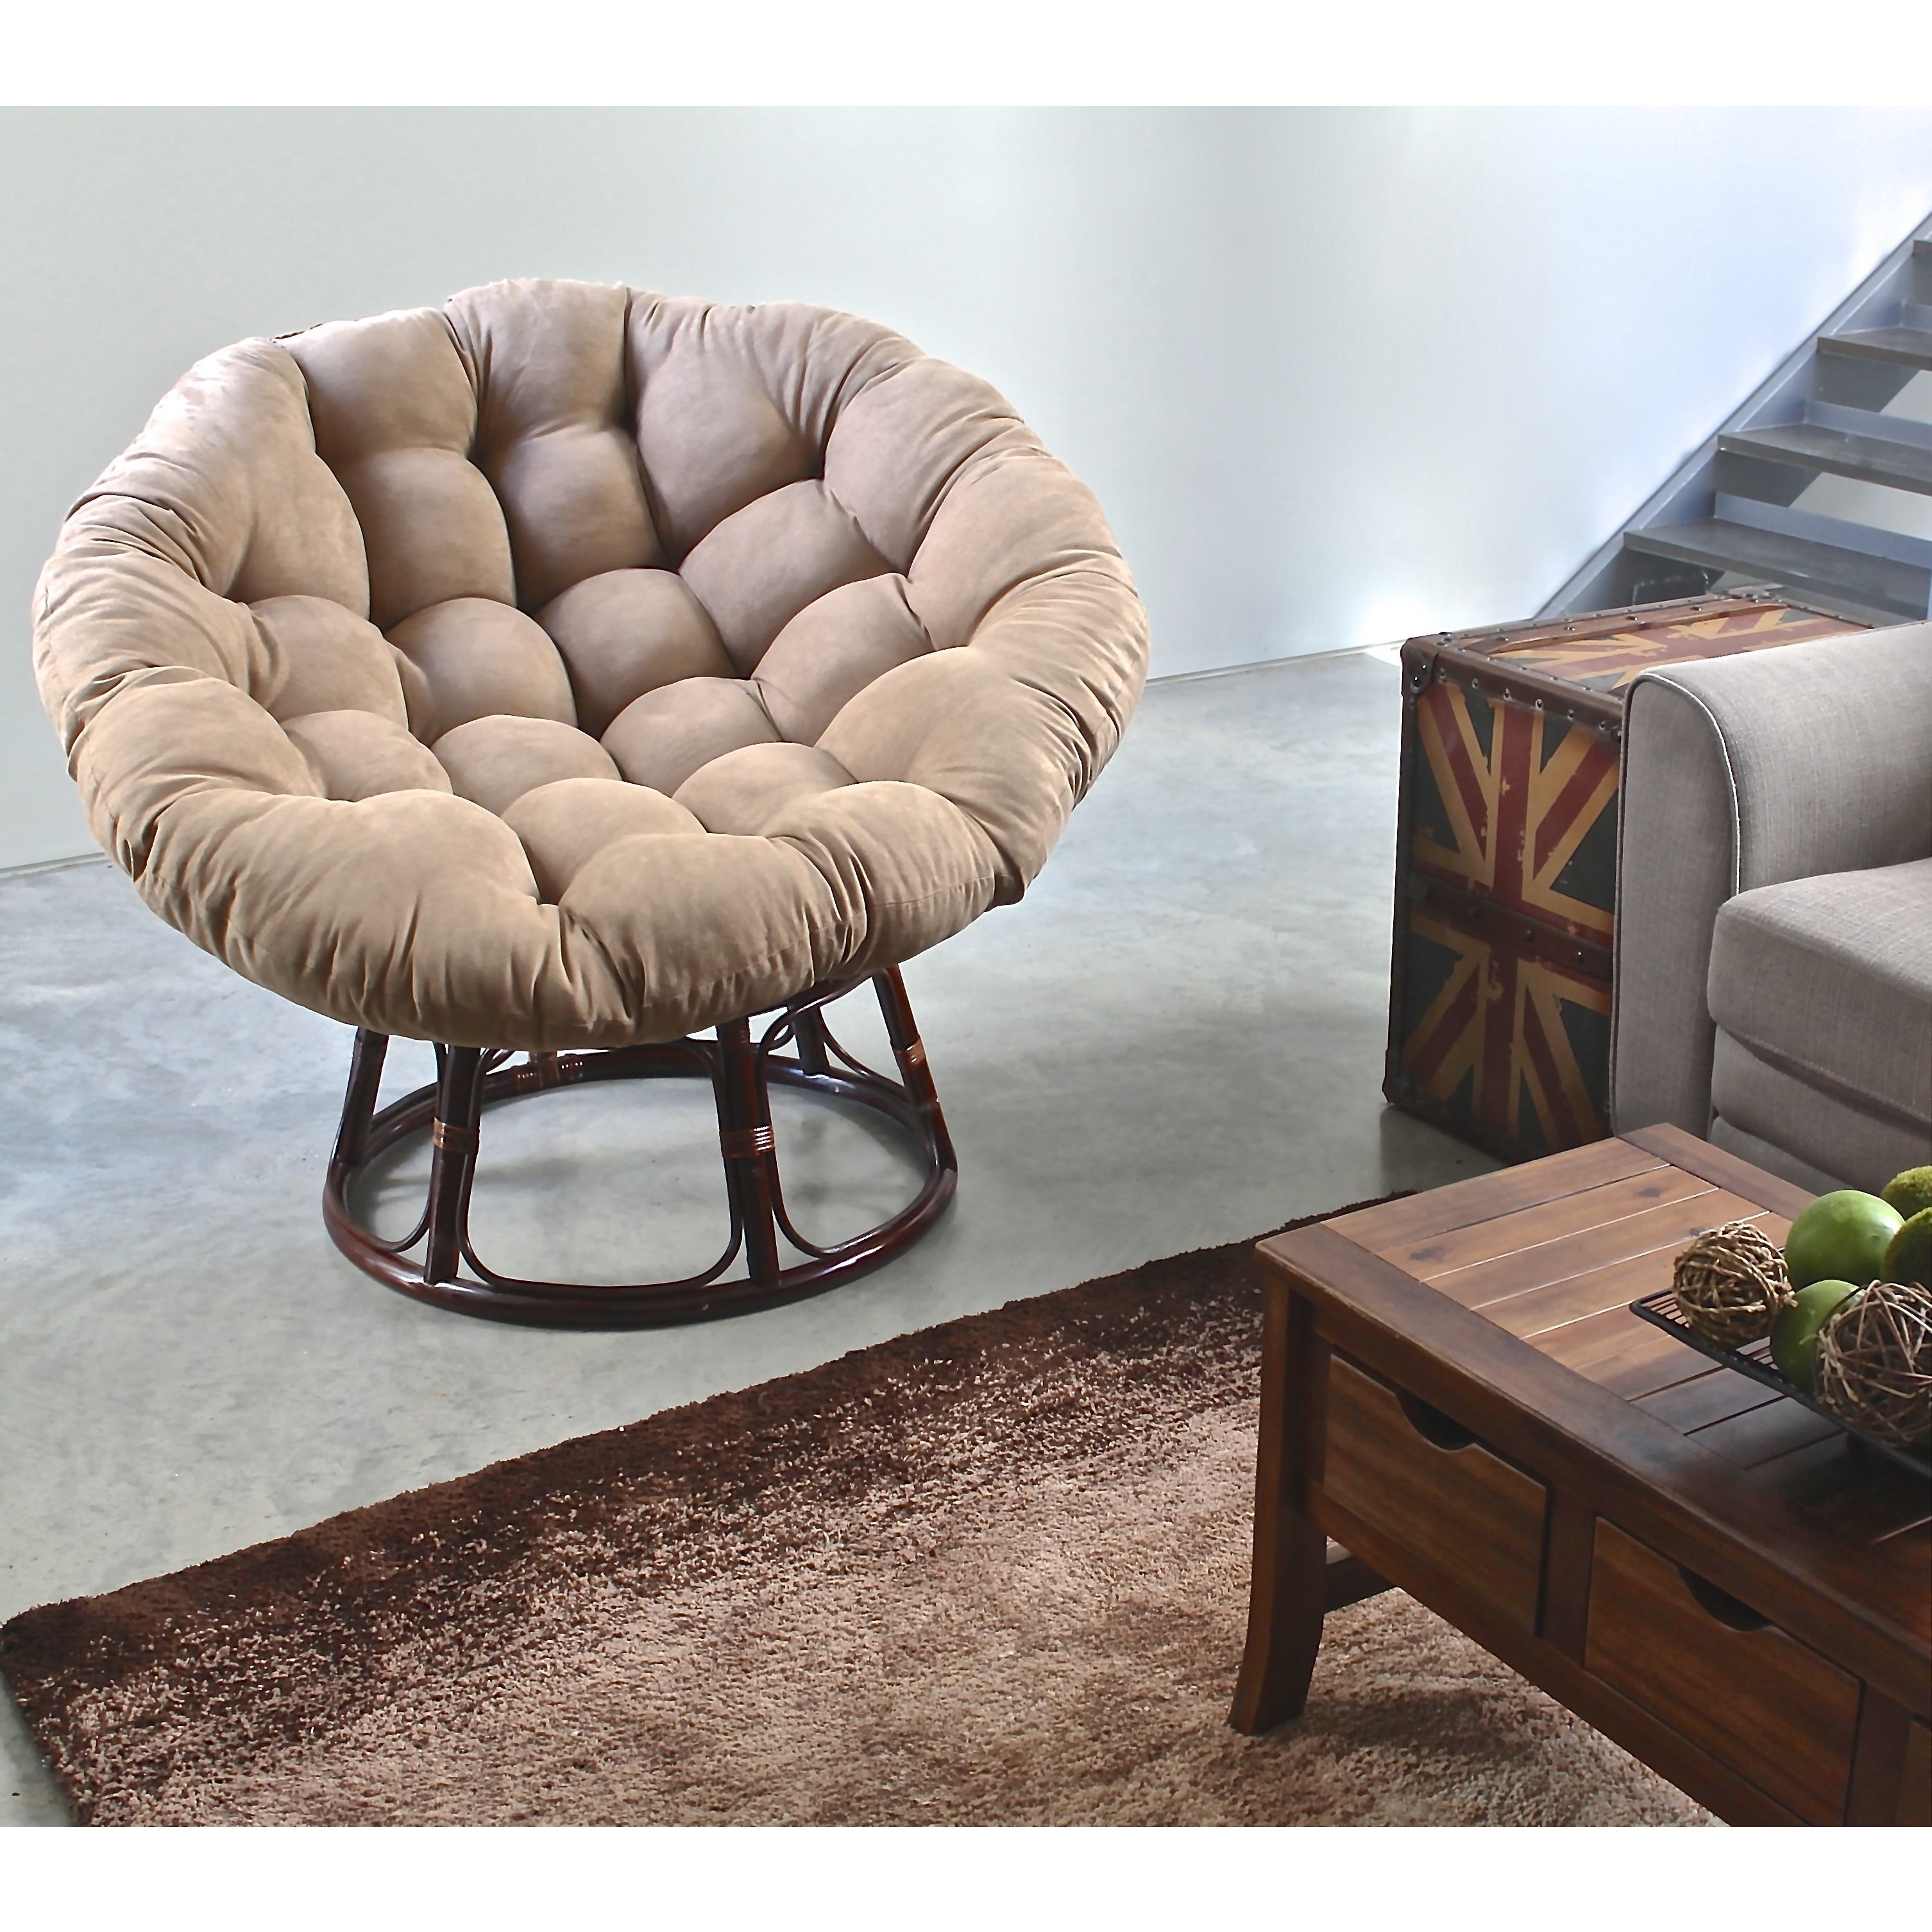 Widely Used Big Lots Chaises Inside Convertible Chair : Papasan Chair Metal Frame Fireplace Tv Stand (View 15 of 15)